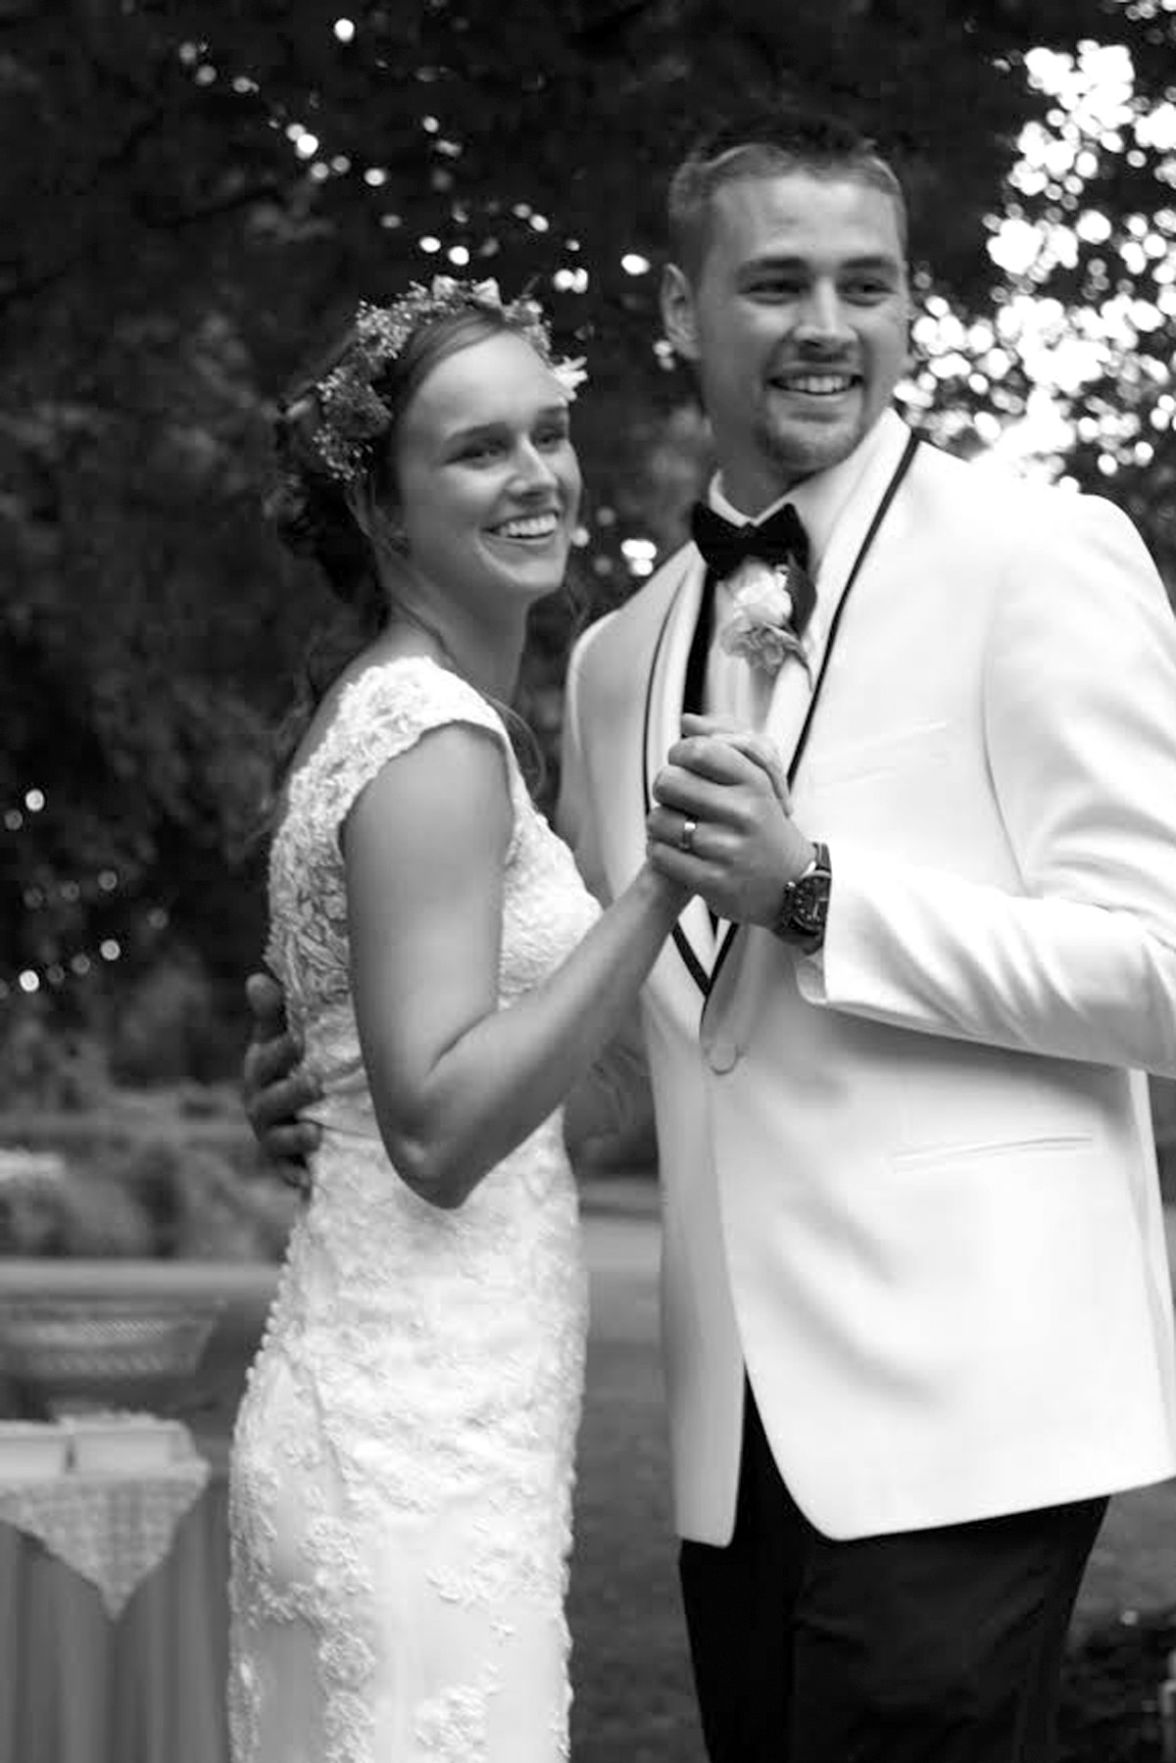 MR. and Mrs. Zachary Taylor Hale